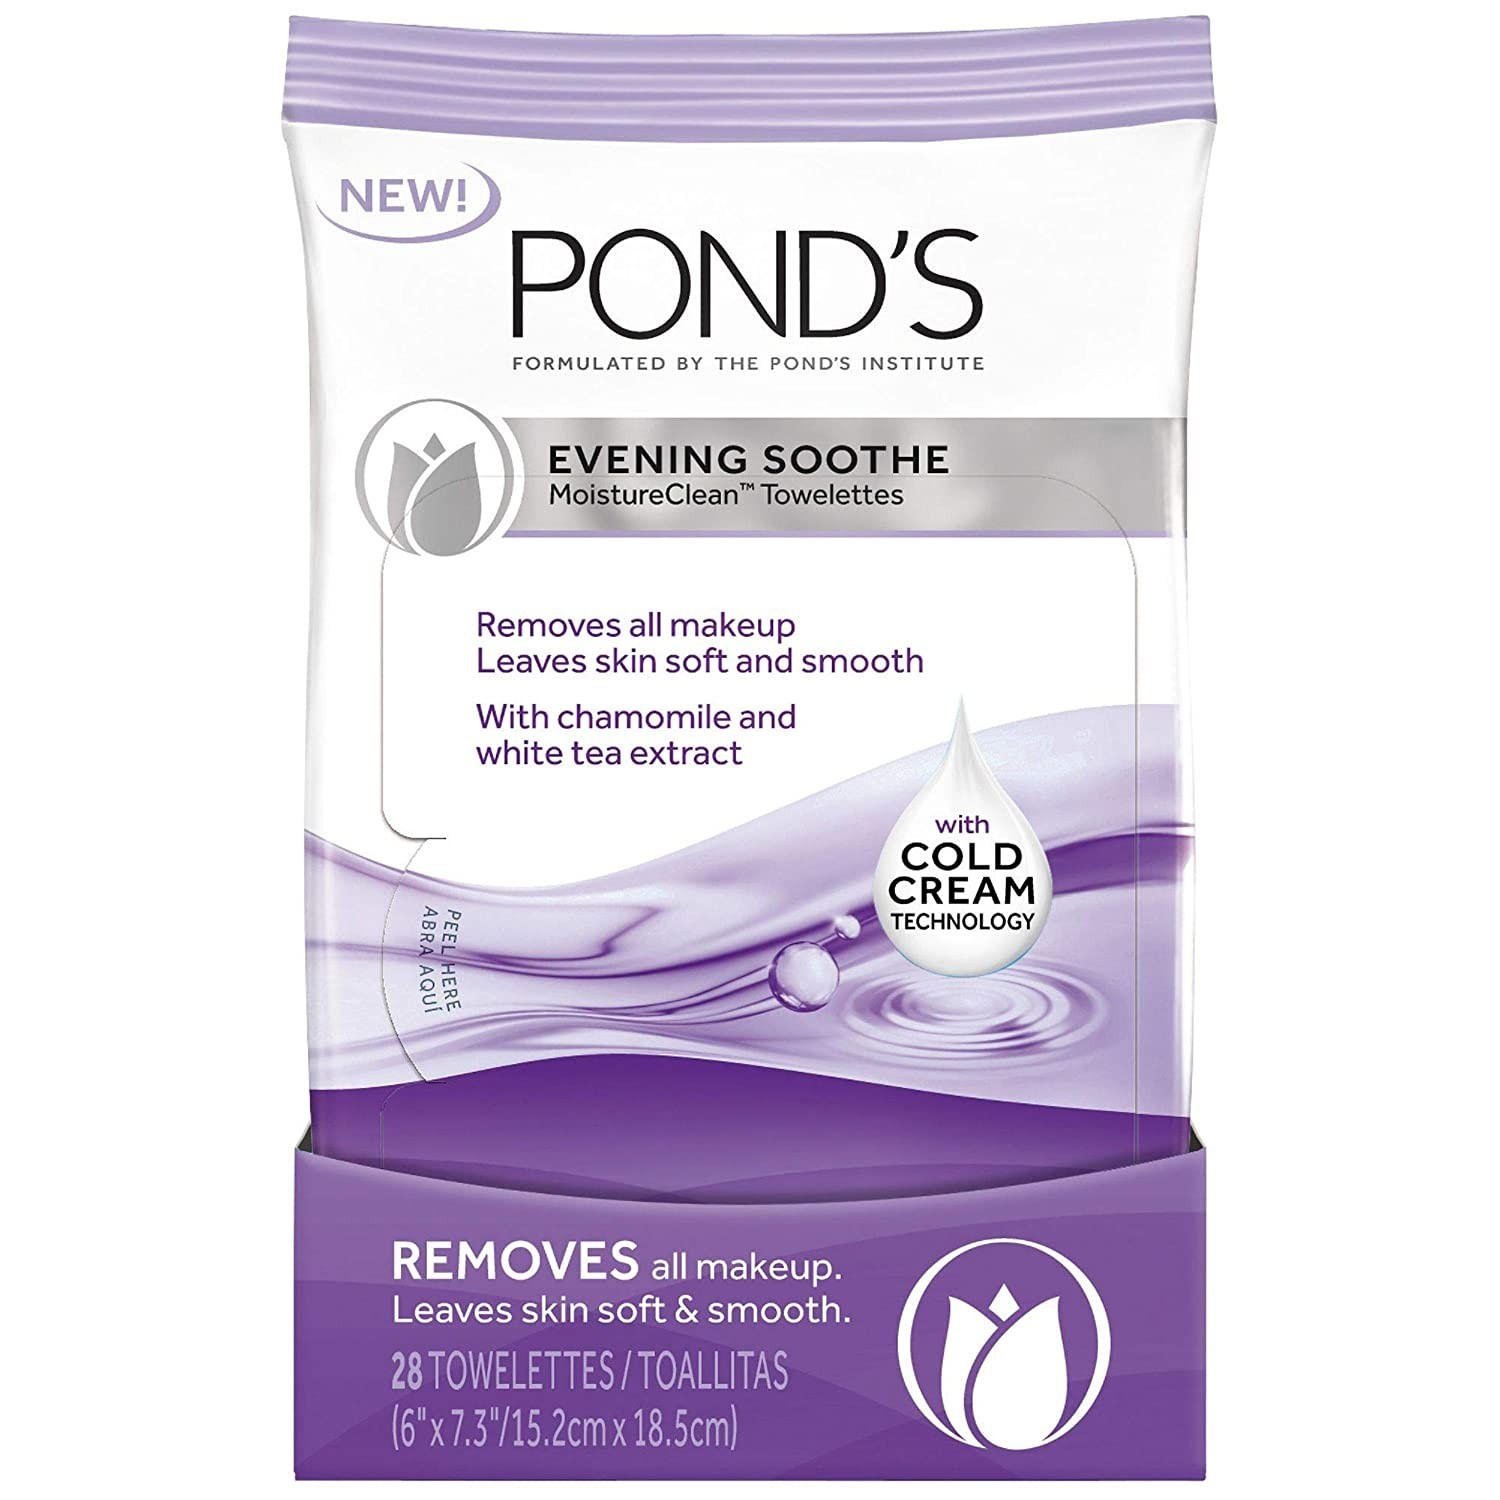 Pond's Makeup Wipes, 12,/240 Cases, Brand New, Ext. Retail $66,646, Newville, PA